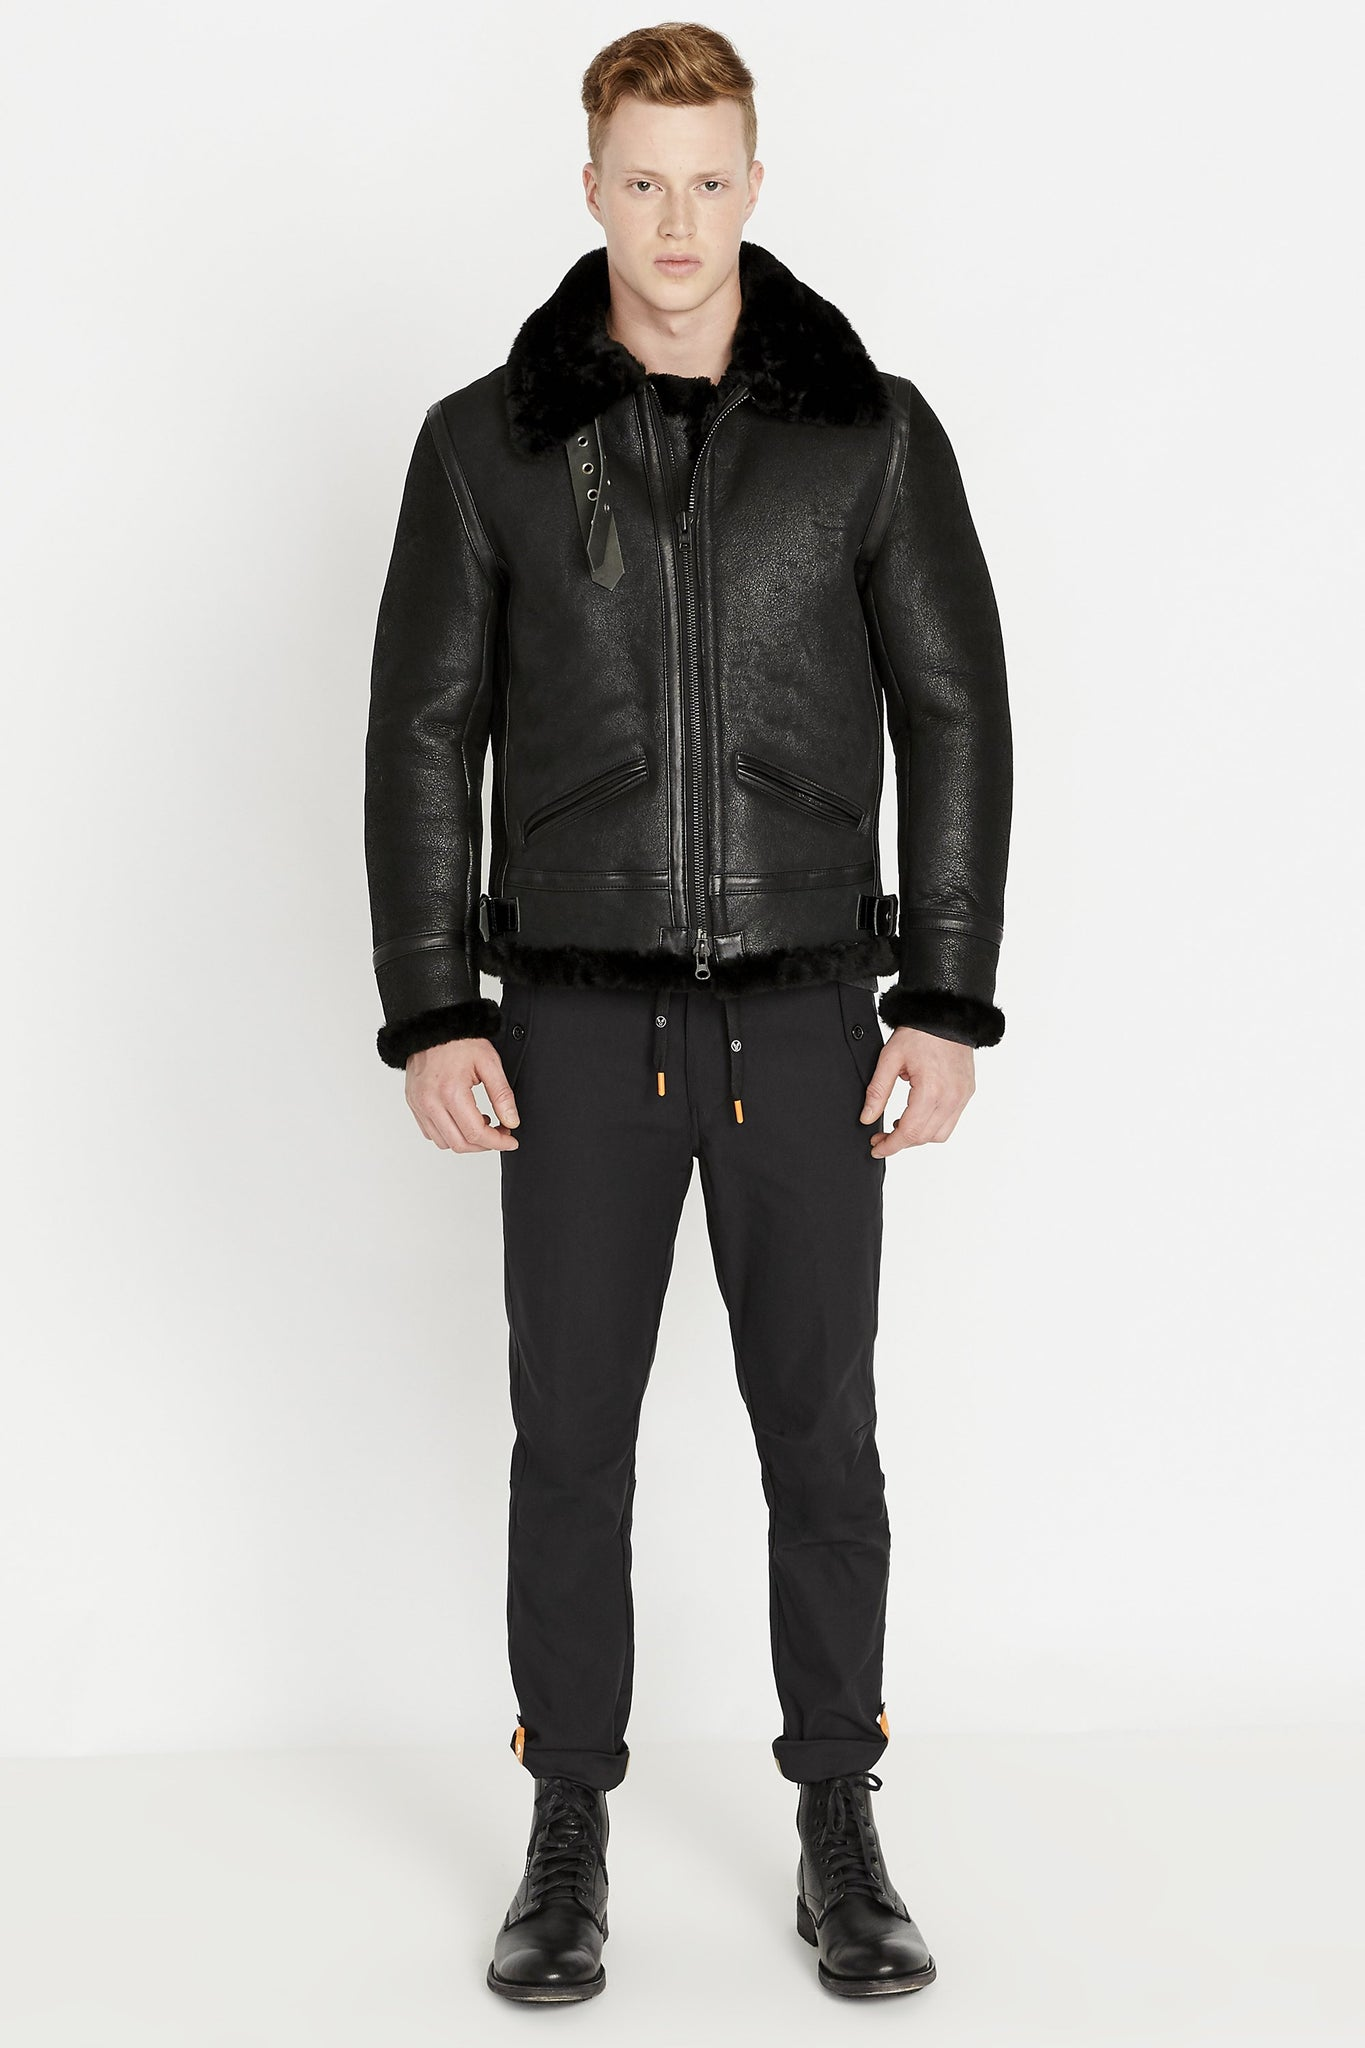 Front full view of men wearing a fully zipped black sheepskin jacket with shearling fur lined collar sleeves and waist with two pocket and black pants